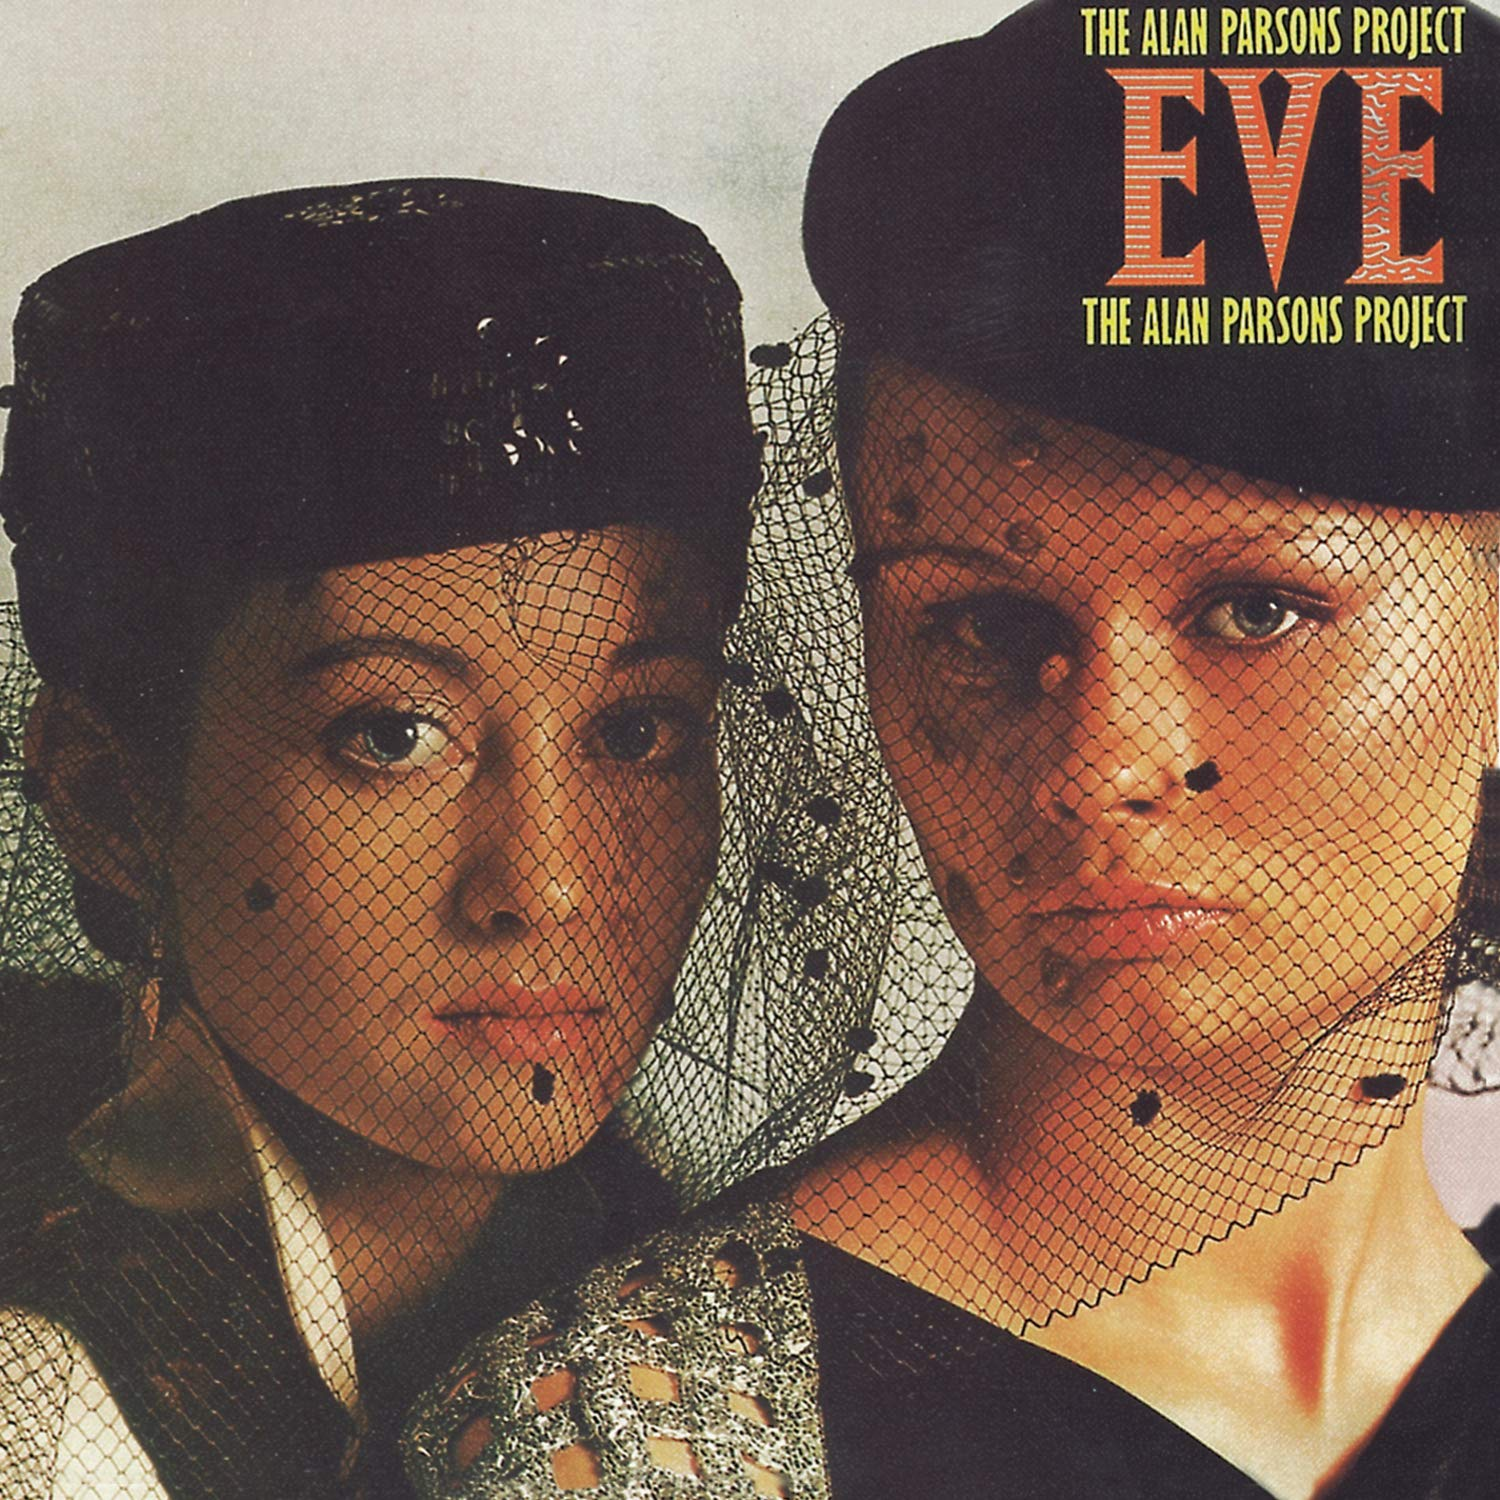 The Alan Parsons Project - Eve (1980) [FLAC] Download